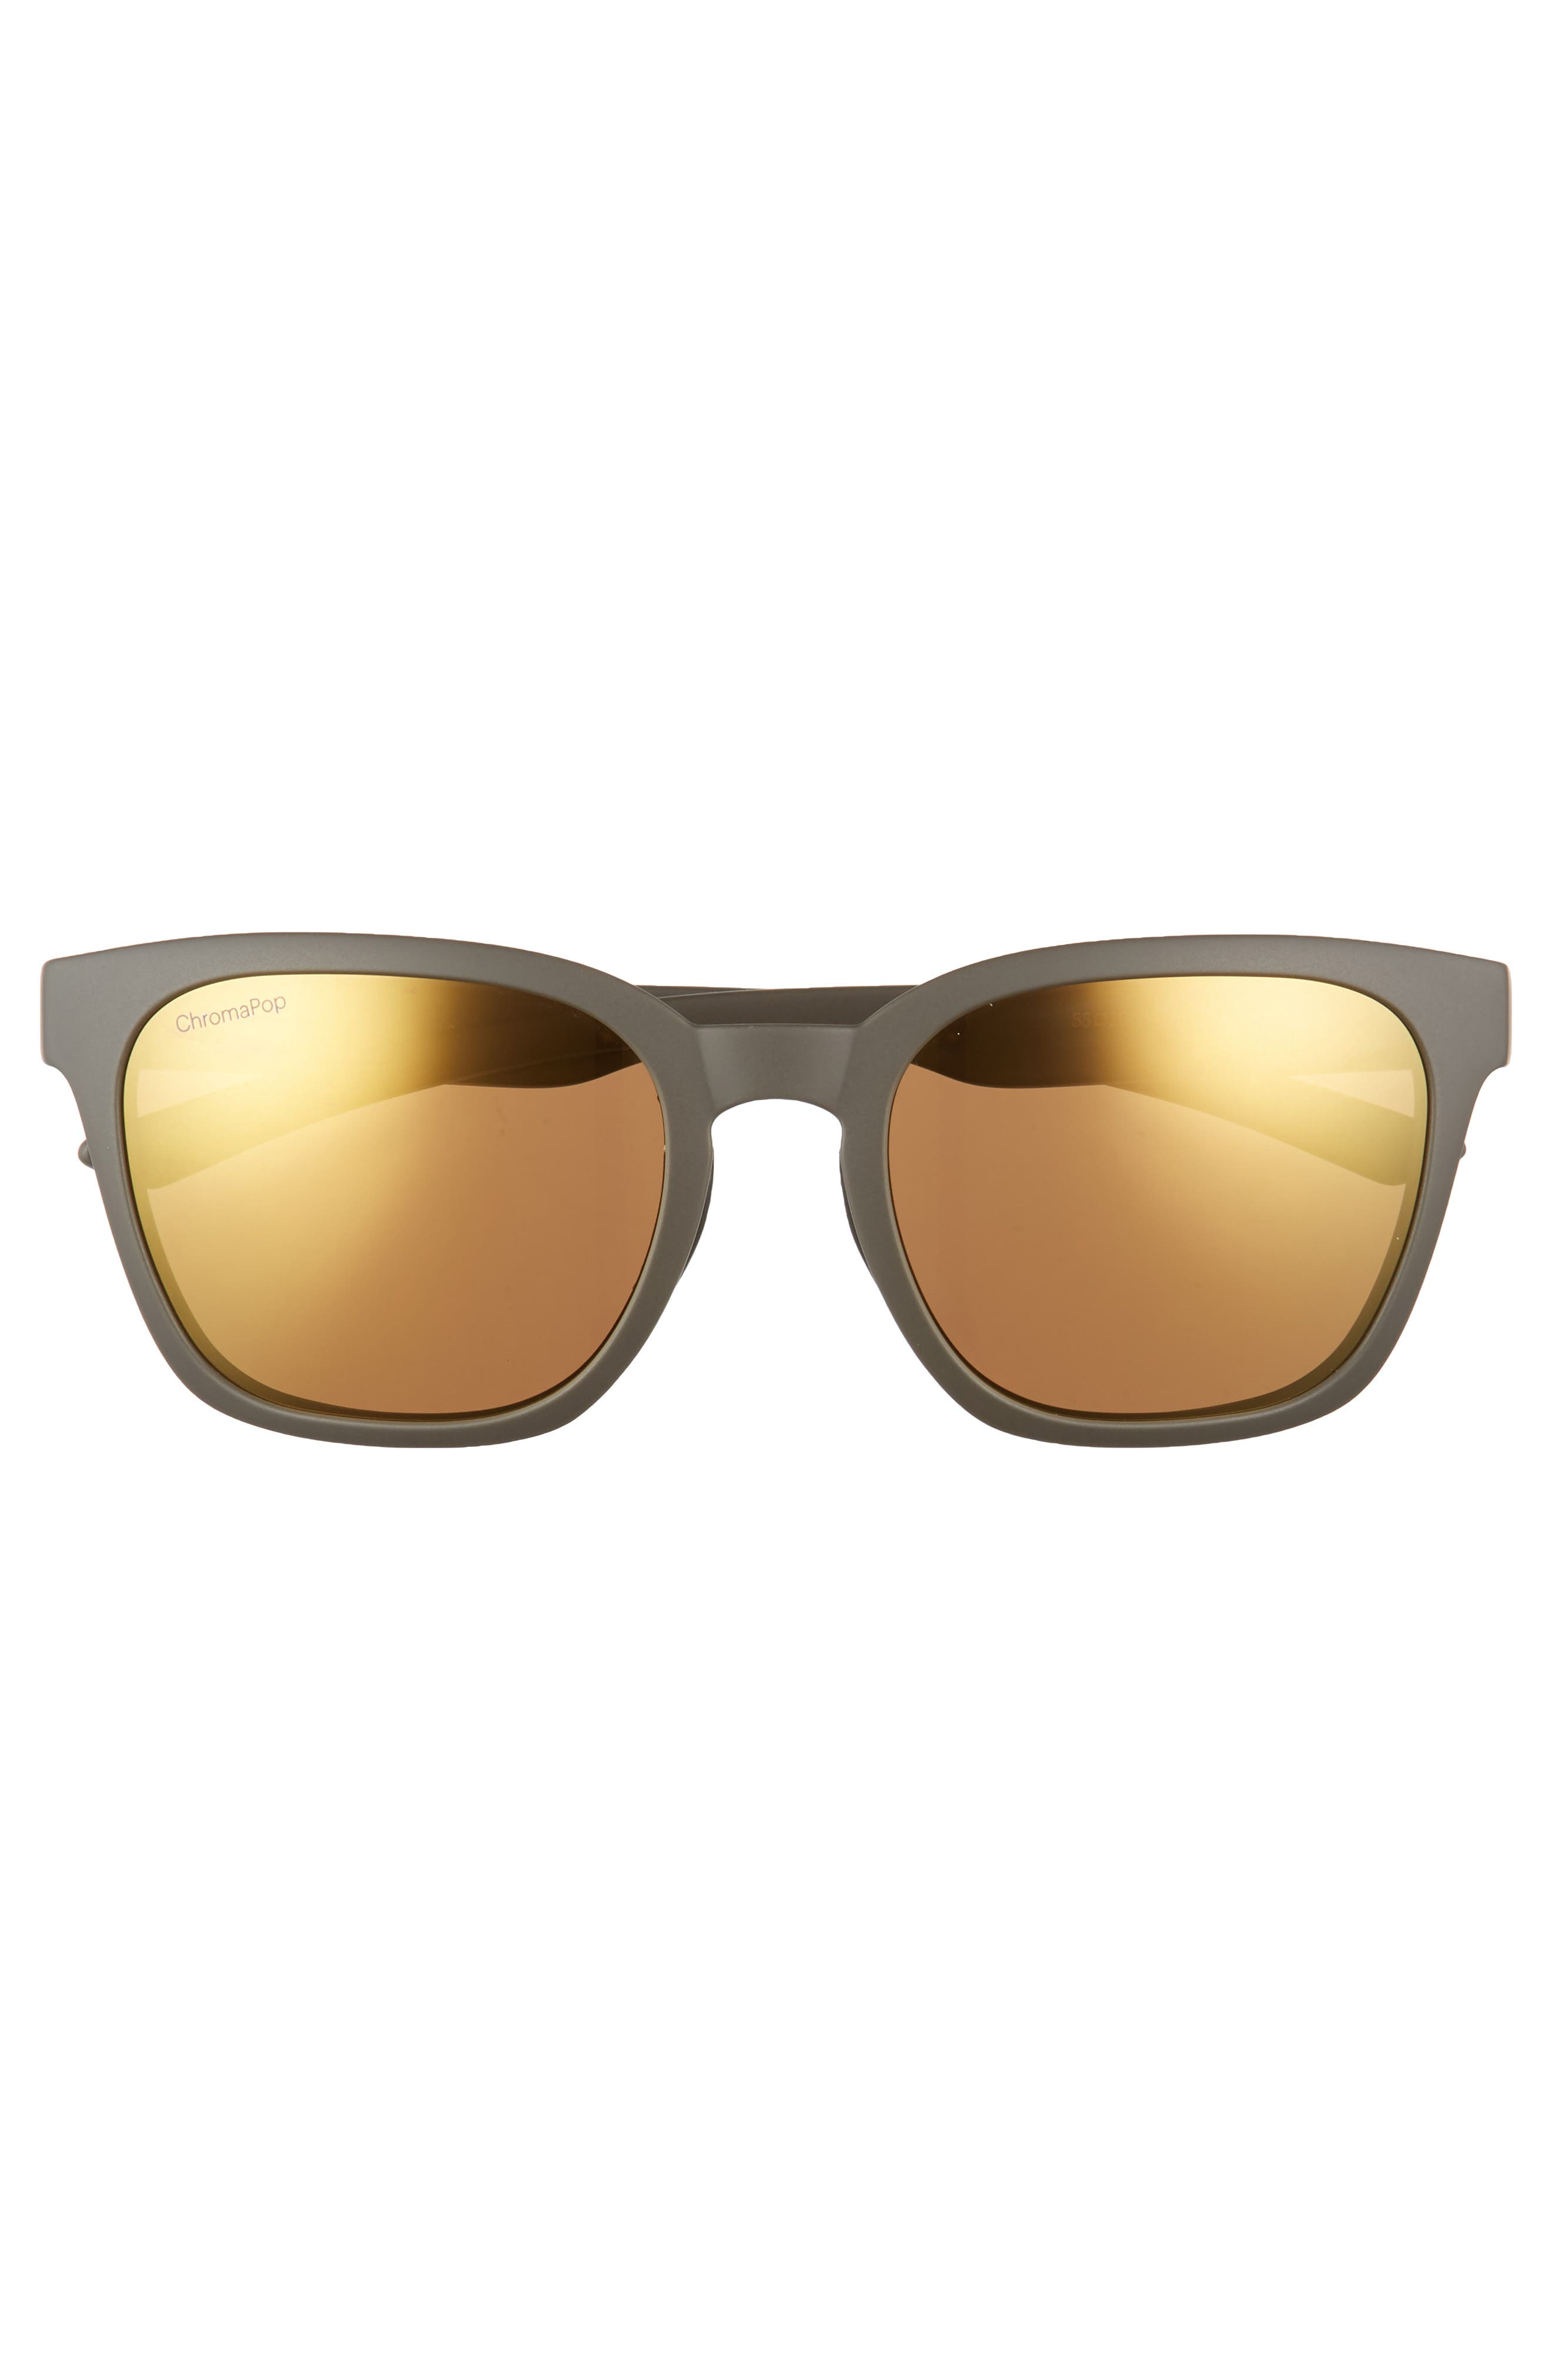 Founder 55mm ChromaPop<sup>™</sup> Polarized Sunglasses,                             Alternate thumbnail 3, color,                             019